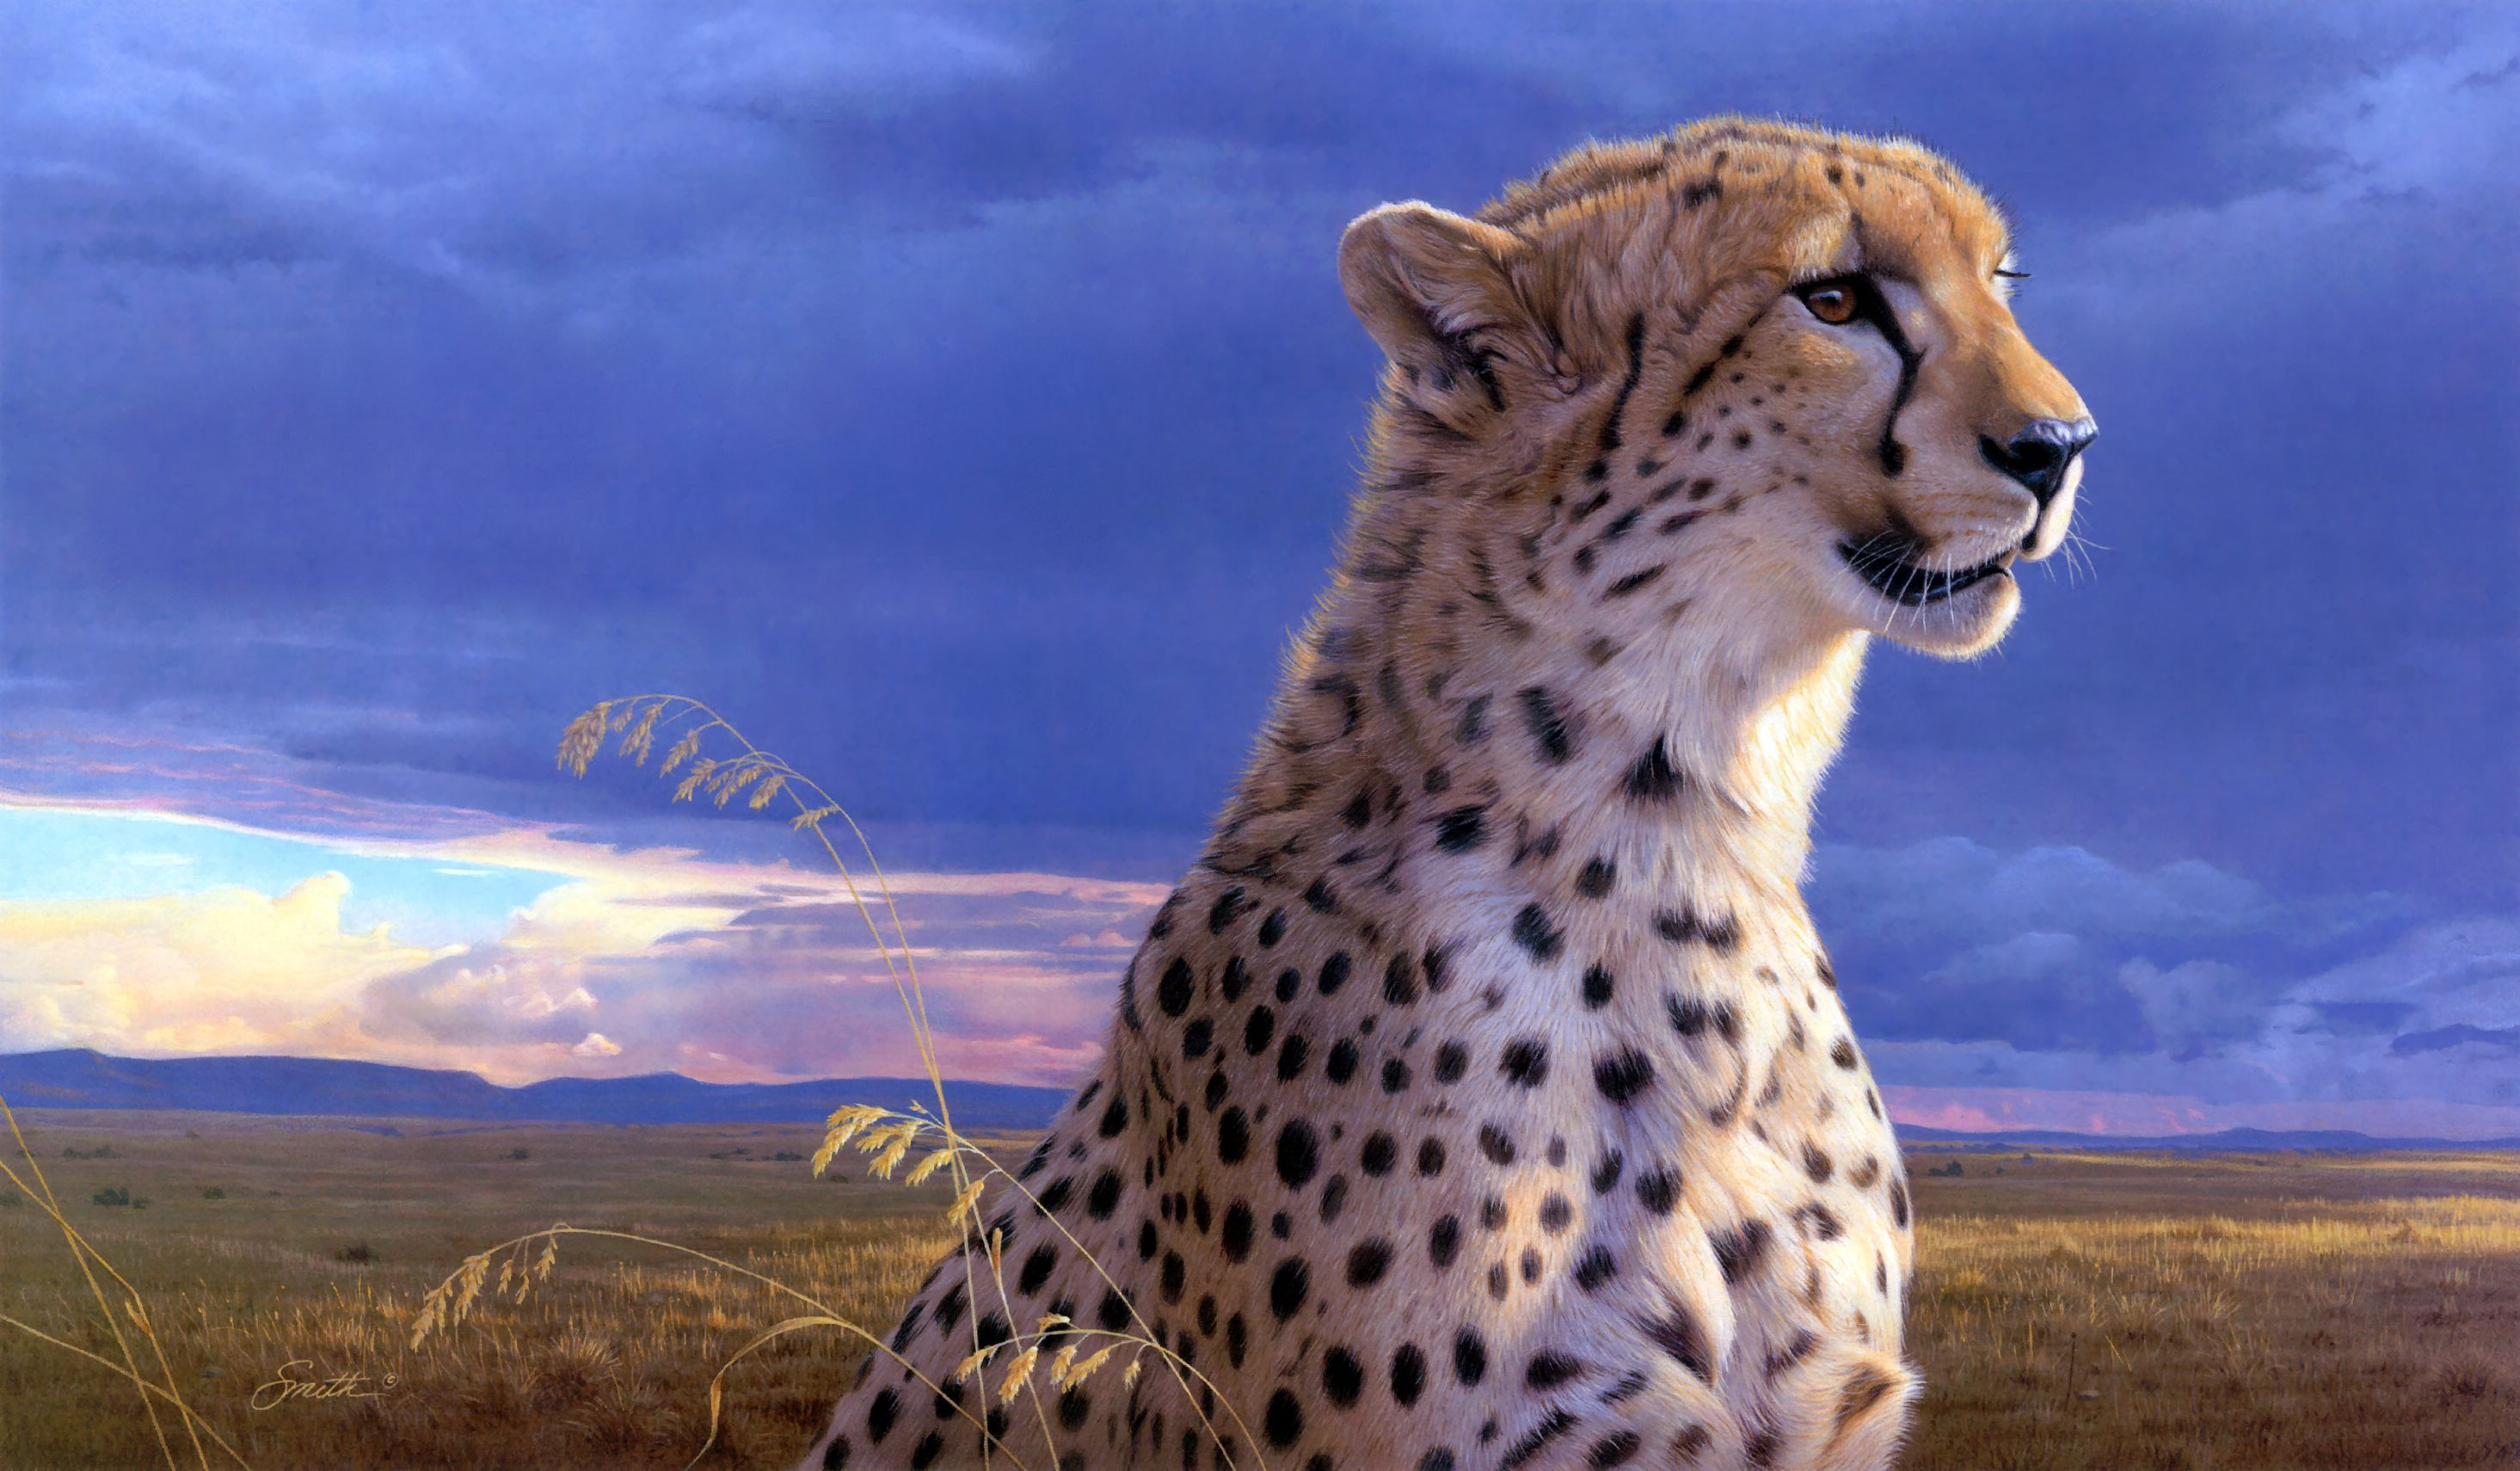 cheetah full hd wallpaper and background 2930x1710 id 249180. Black Bedroom Furniture Sets. Home Design Ideas